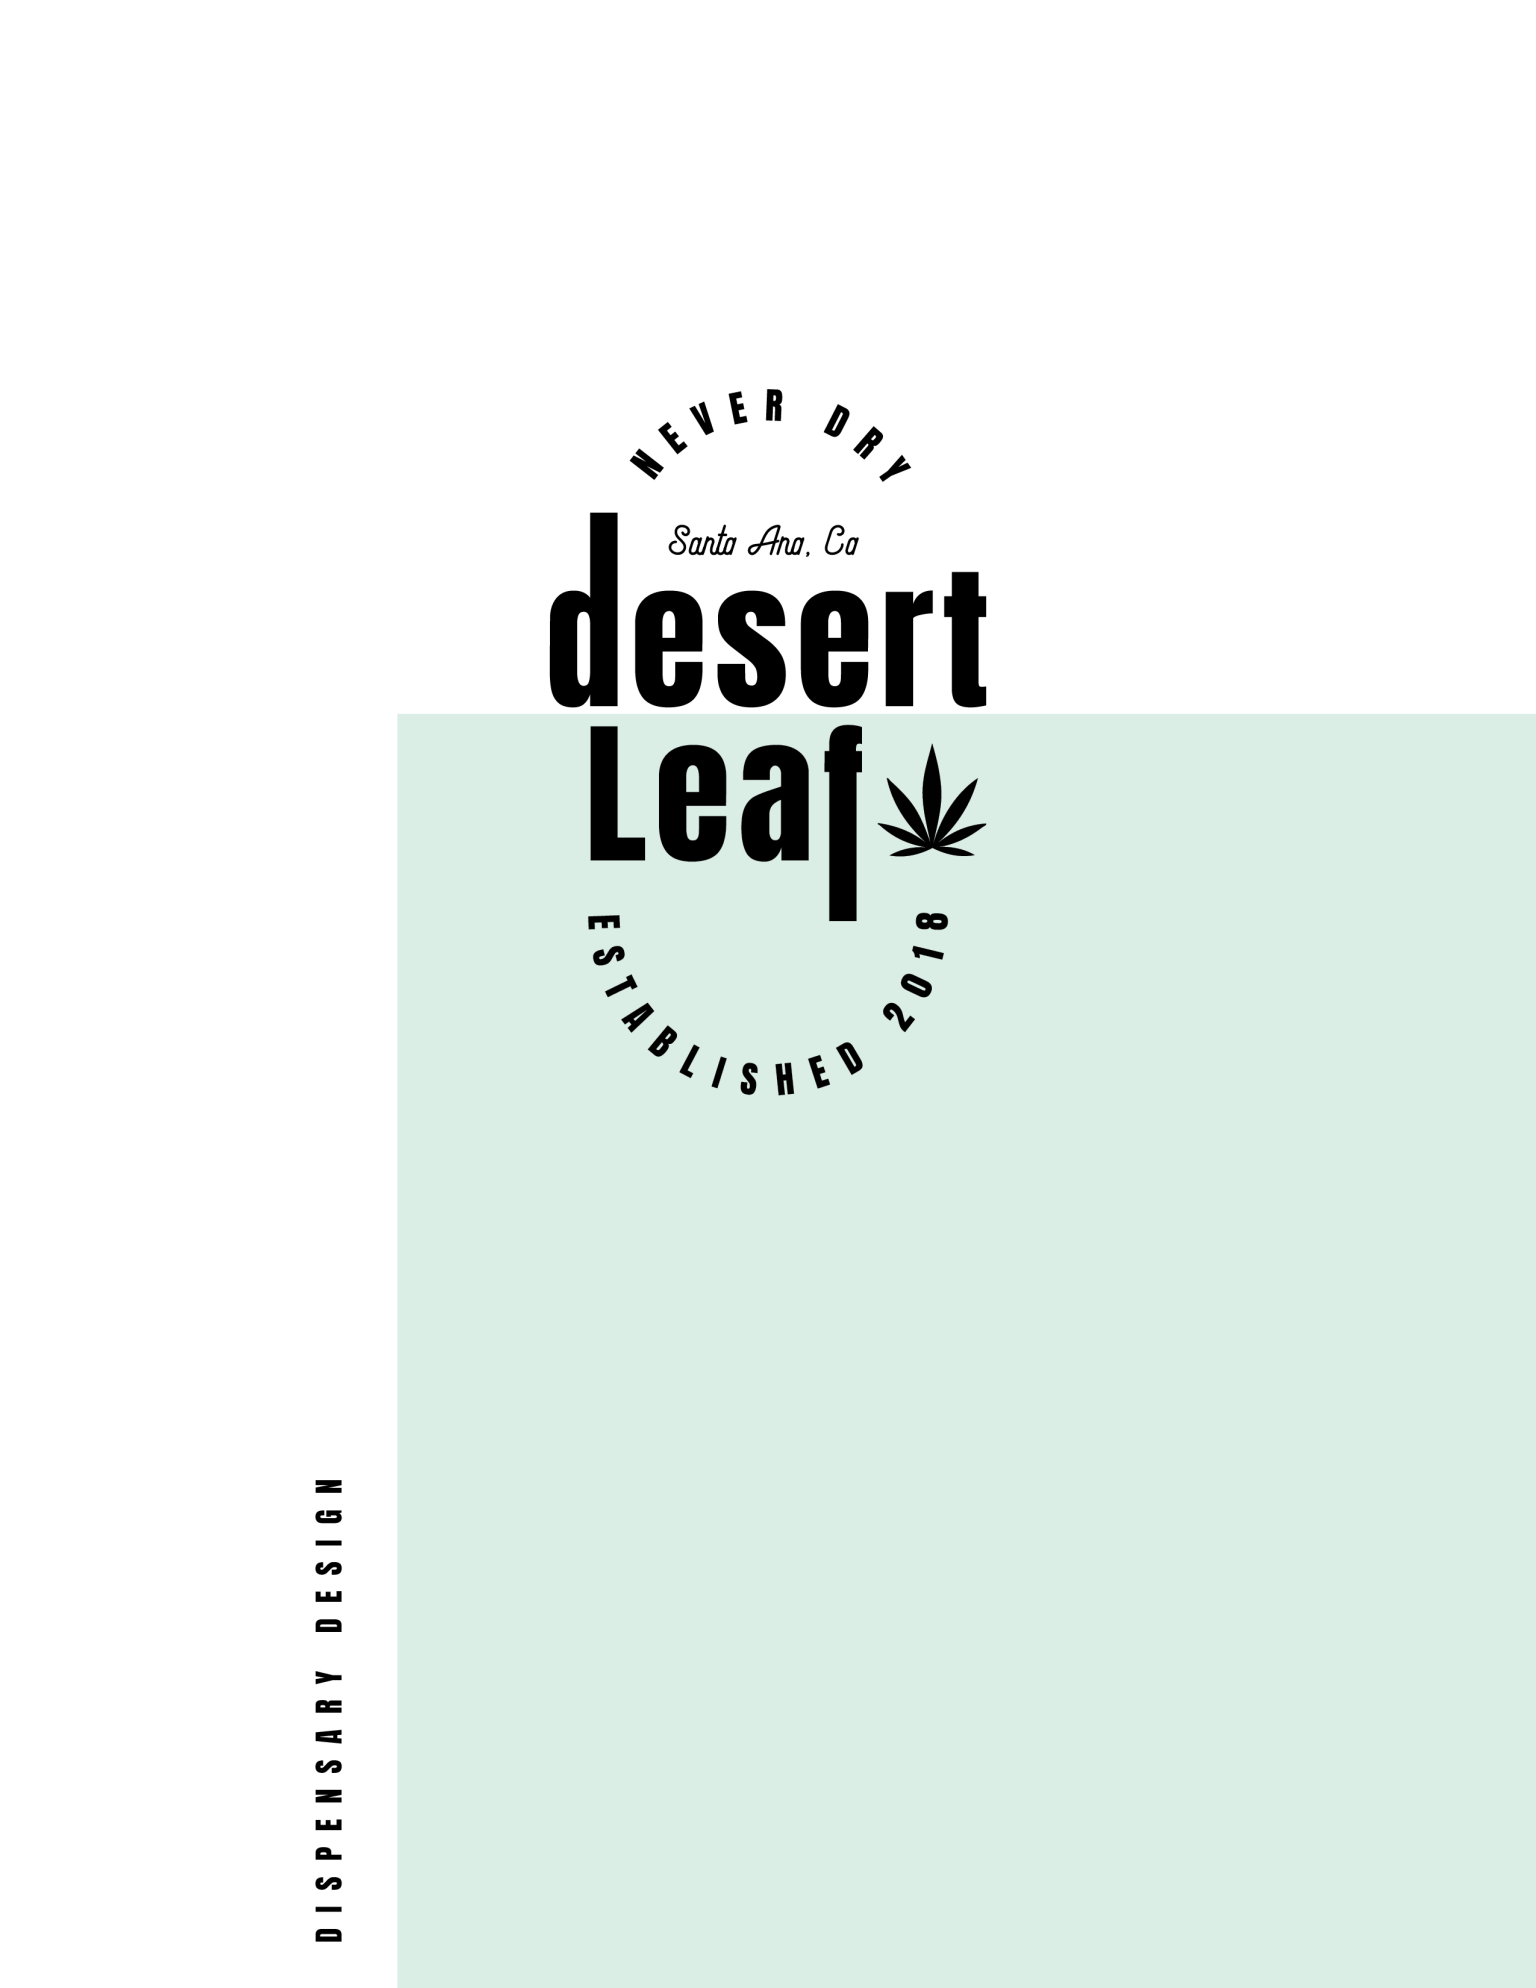 Desert Leaf Dispensary